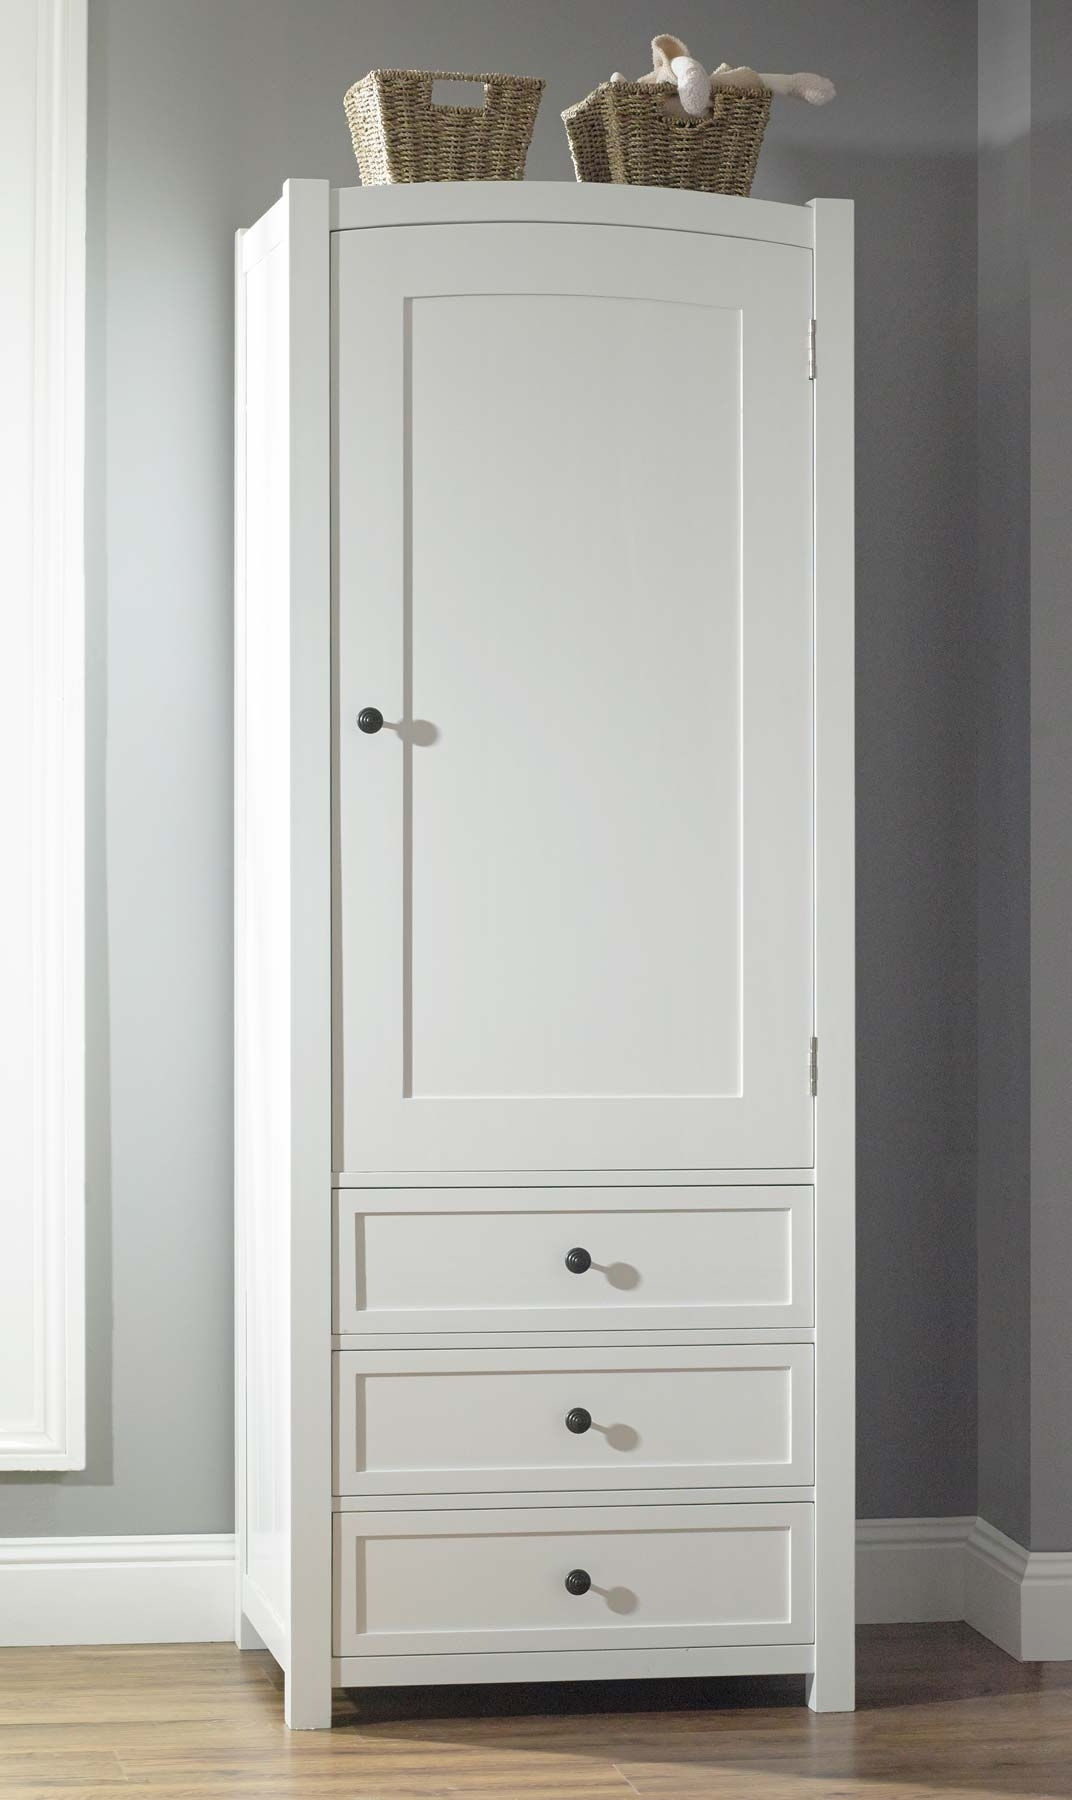 Classic Mirrored White Painted Wooden Wardrobe With Black Knob Regarding Favorite Tall Wardrobes (View 2 of 15)